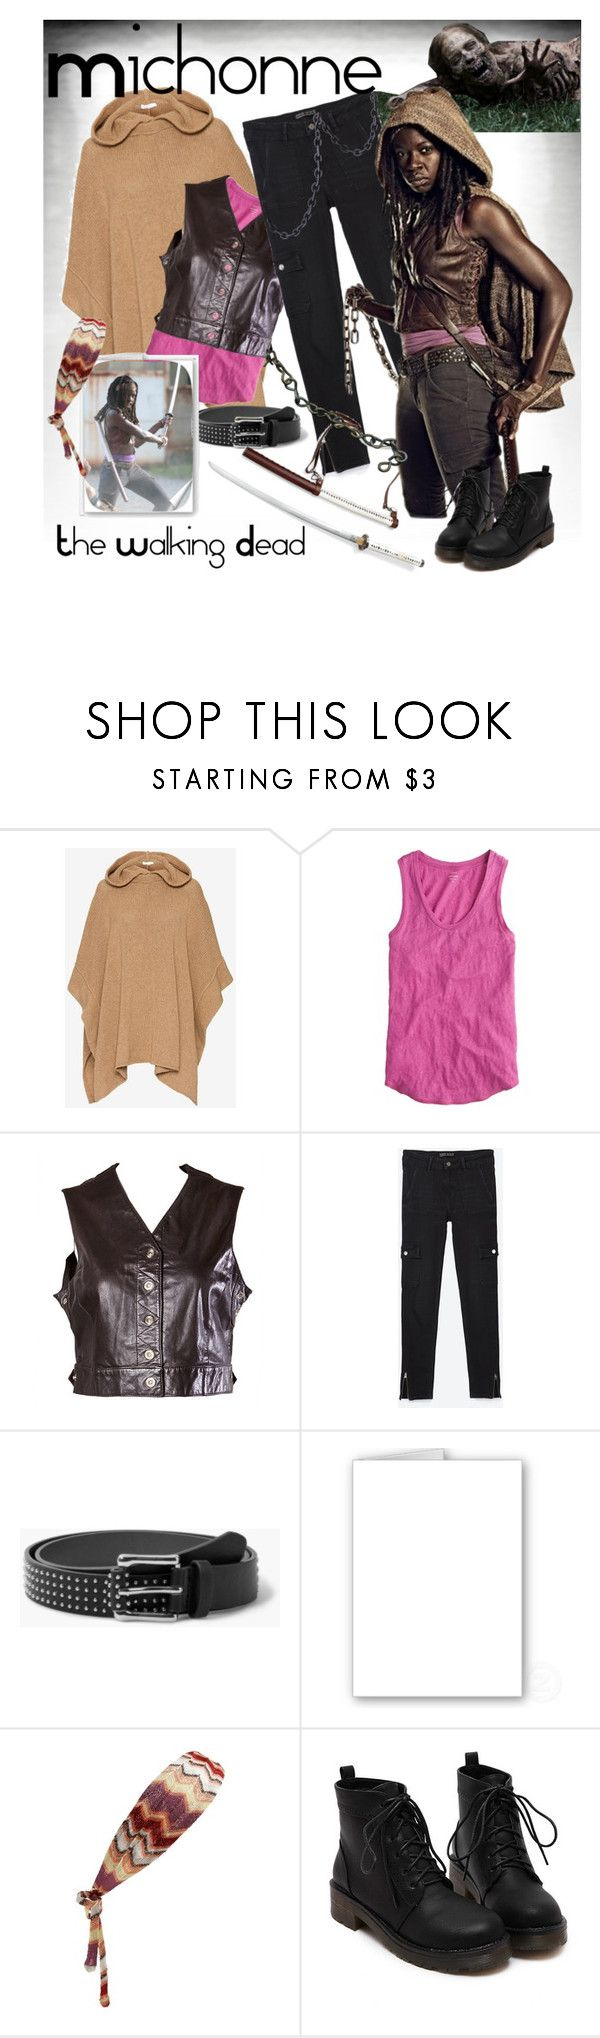 """""""Michonne: The Walking Dead Halloween Costume"""" by tanyabishop-icovetfashion ❤ liked on Polyvore featuring See by Chloé, J.Crew, Emanuel Ungaro, Zara, MANGO, Missoni, thewalkingdead, michonne and halloweencostume"""